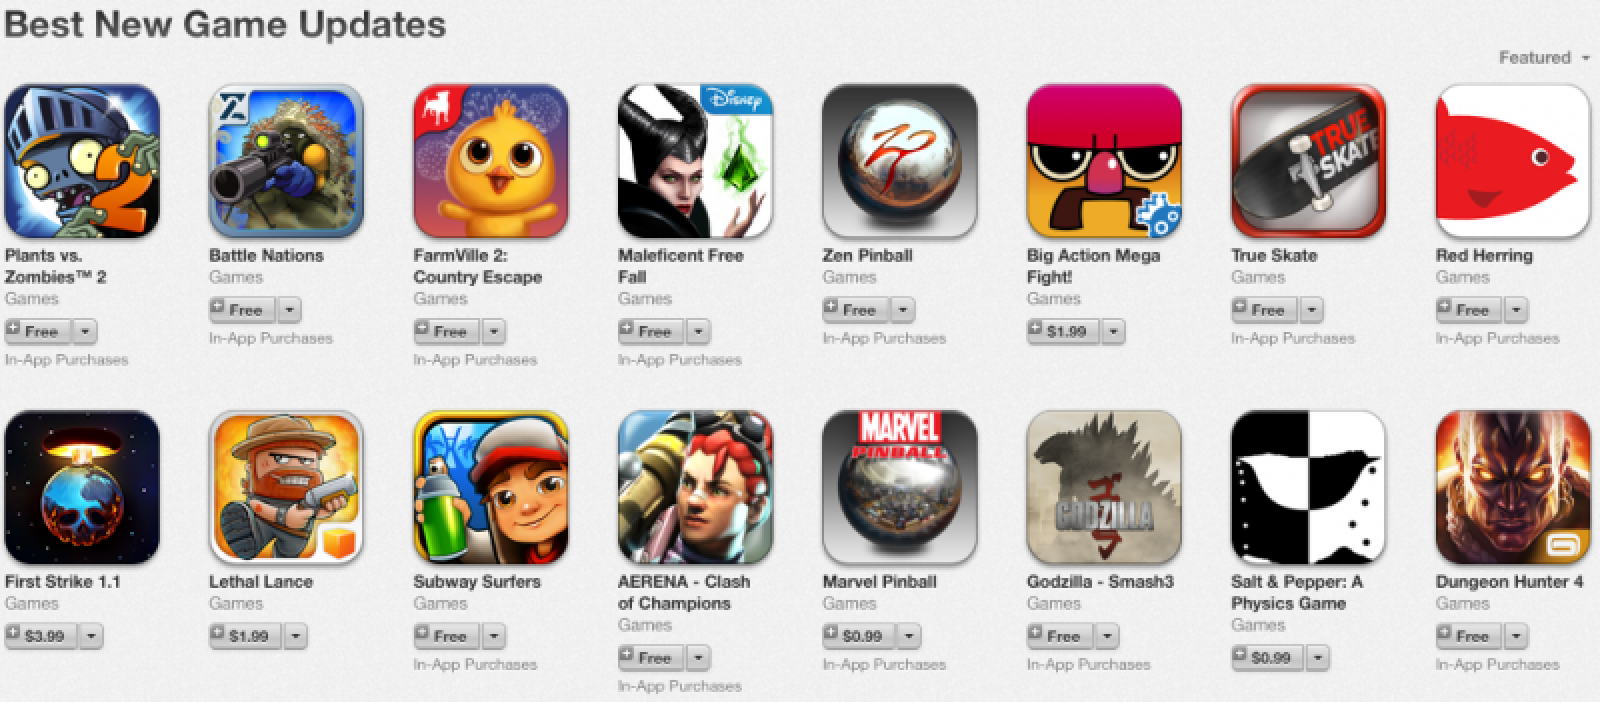 The Best Games Apps: Top Games and Mini-Games for the iPhone